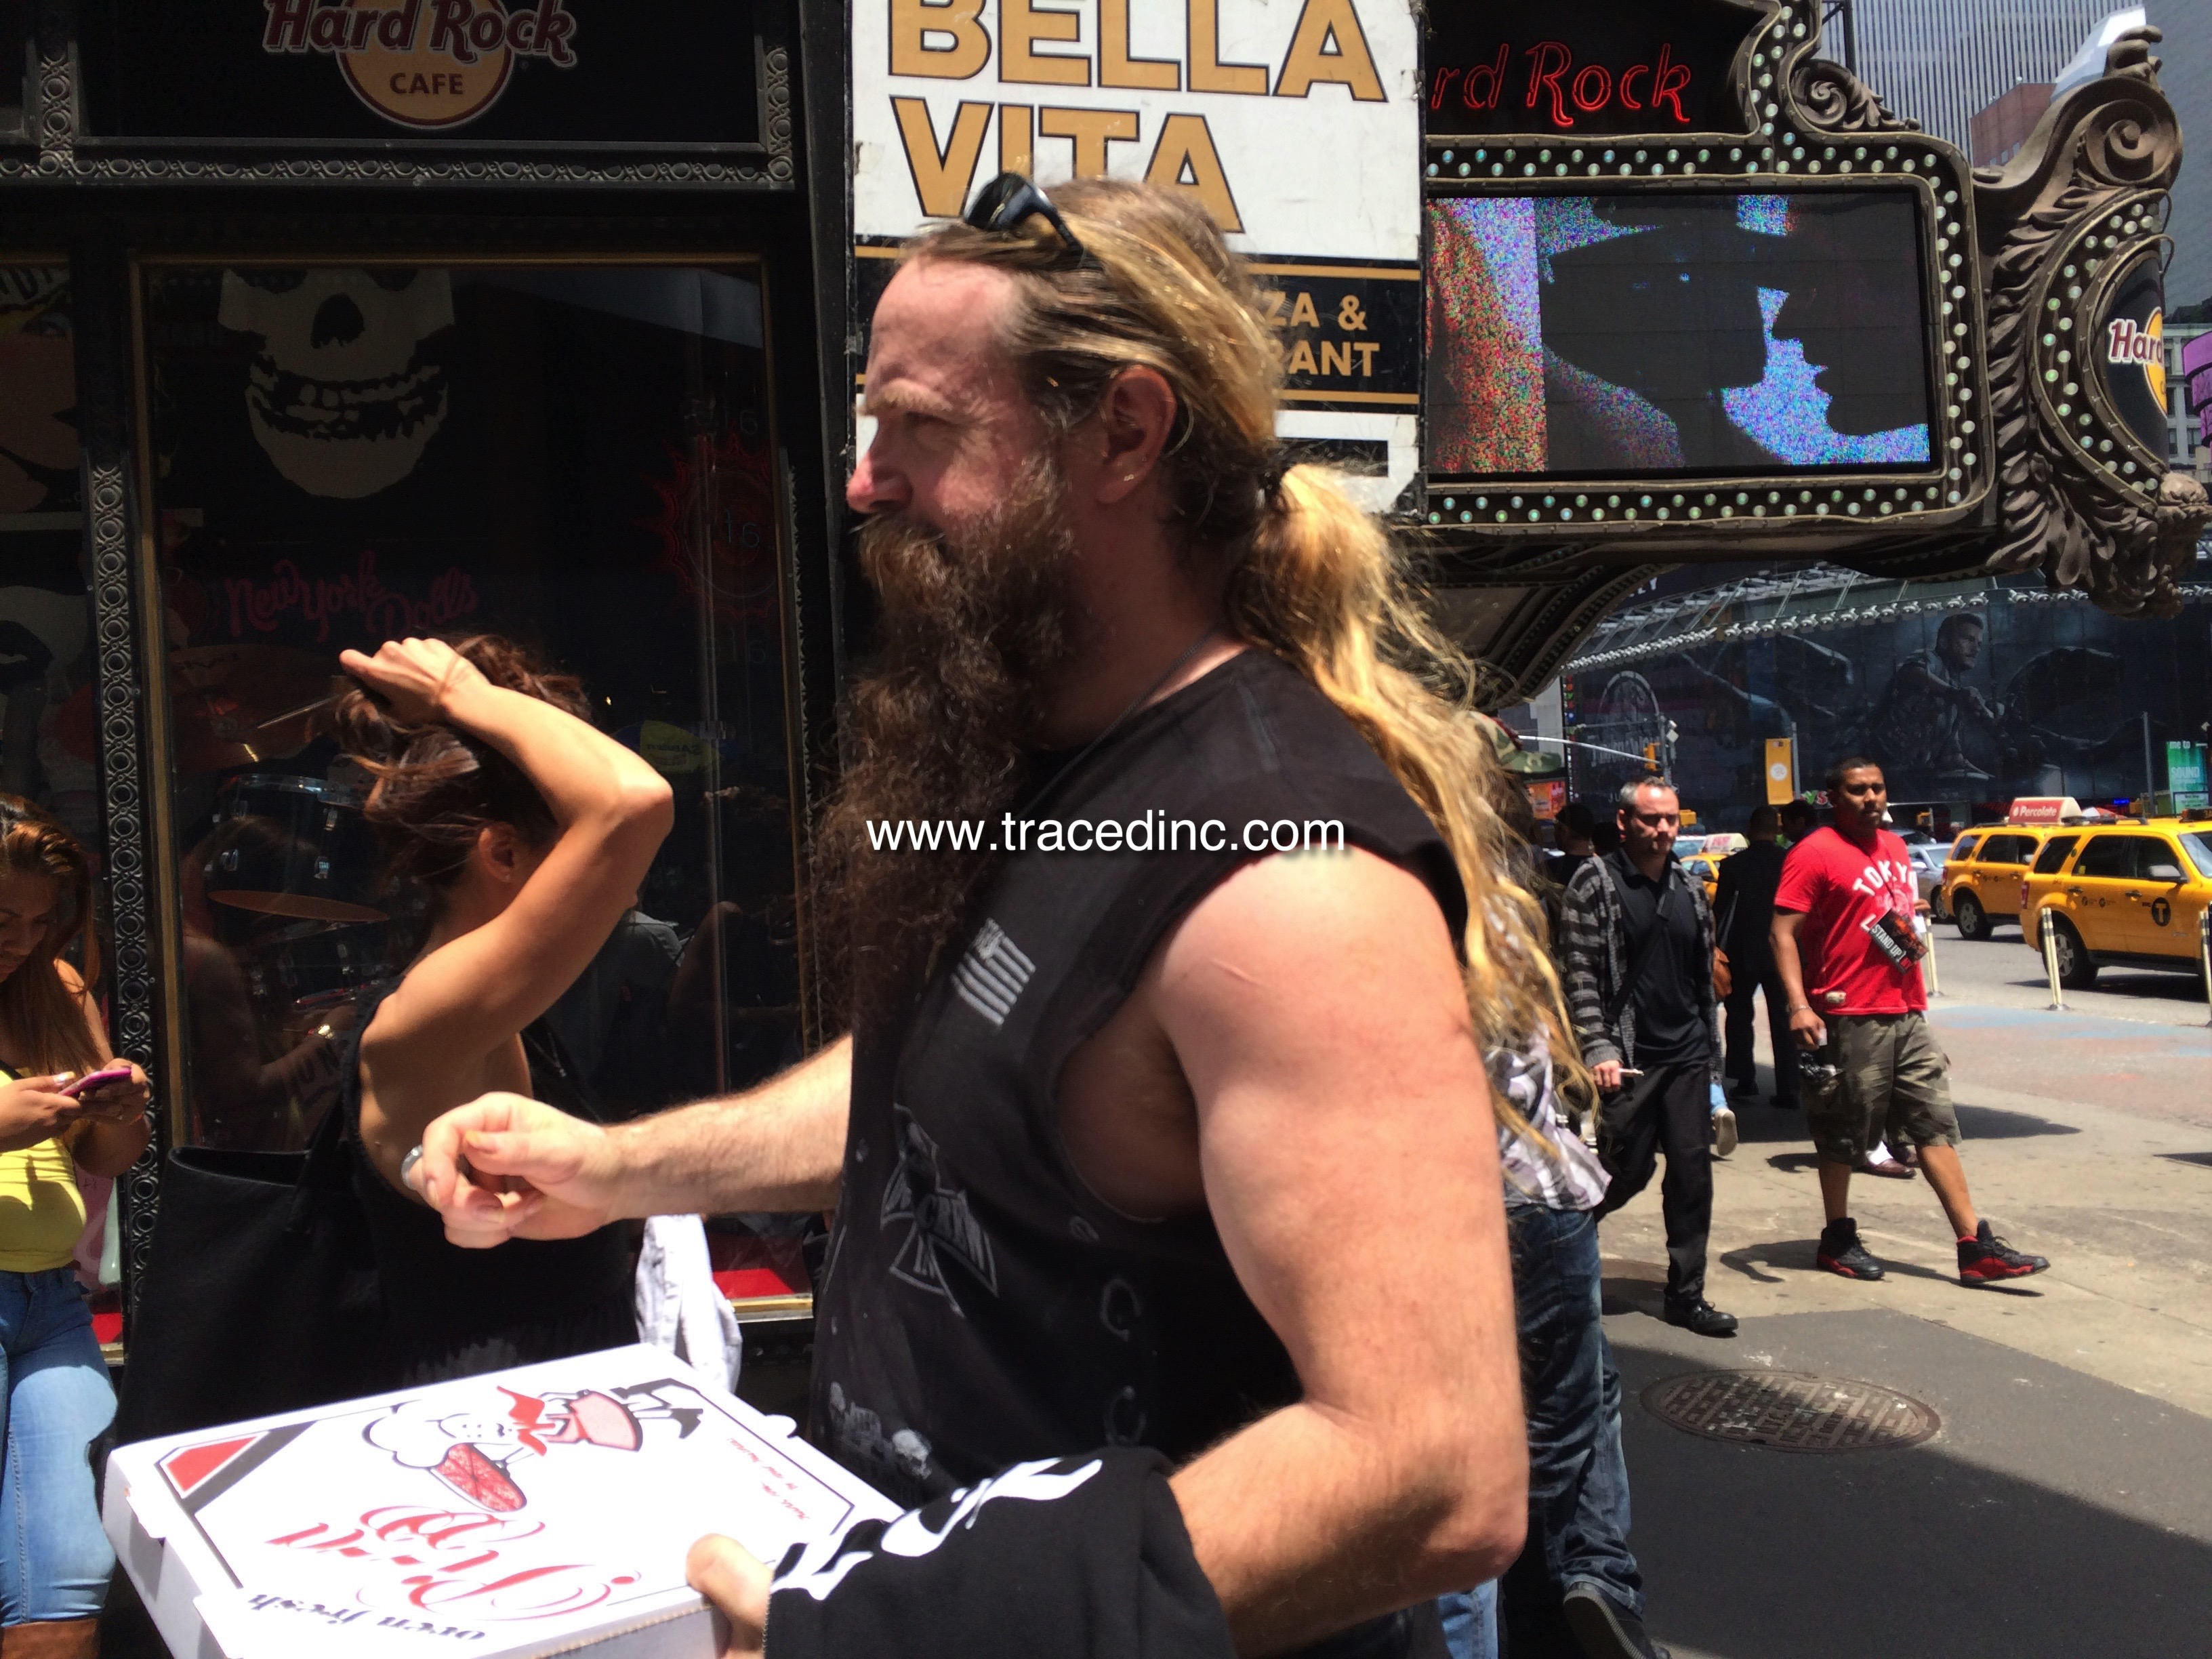 Ran into Zakk Wylde getting lunch